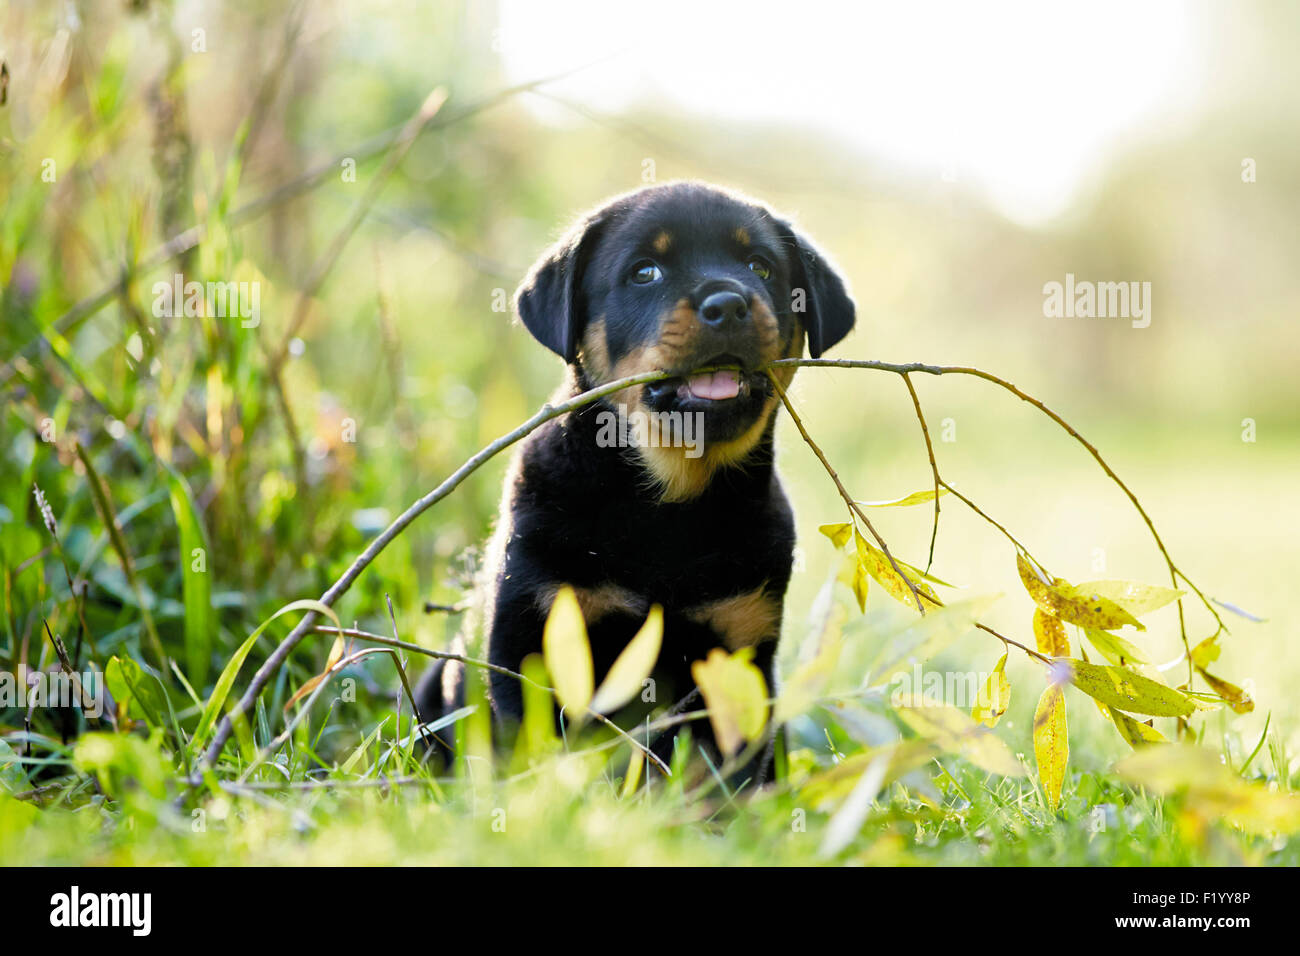 Rottweiler Puppy pulling at twig Germany - Stock Image